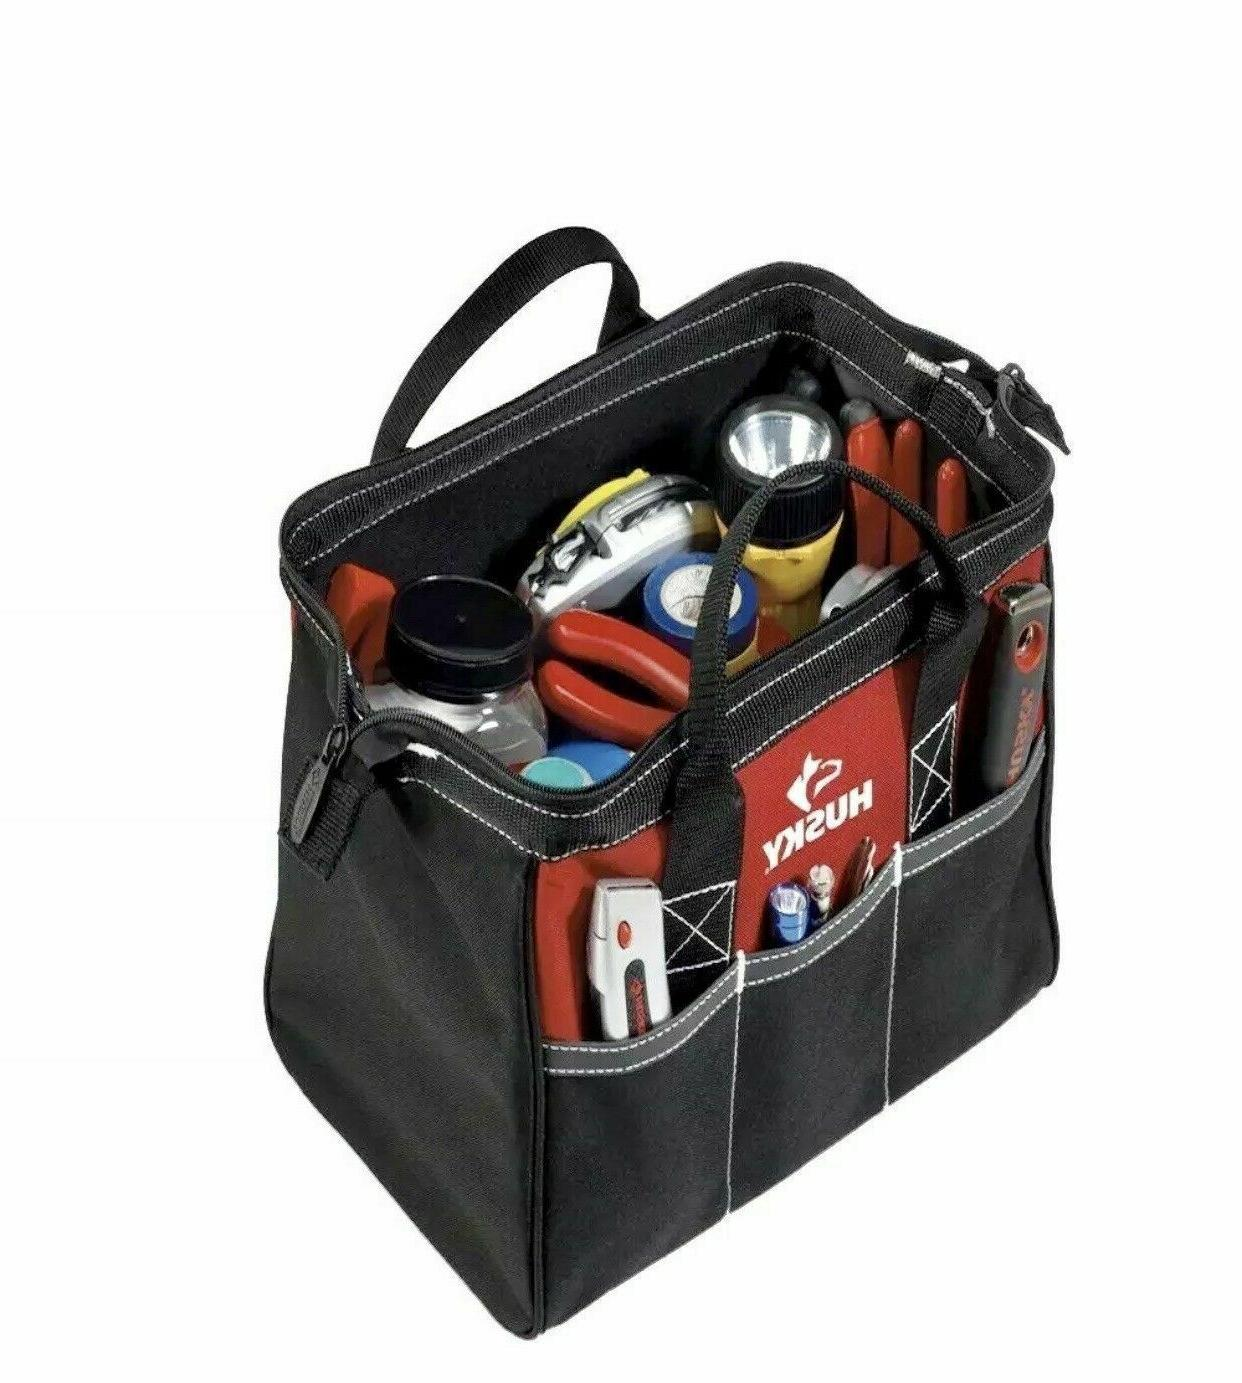 BRAND 12 in. Organizer Carrying Case - FAST SHIPPING!